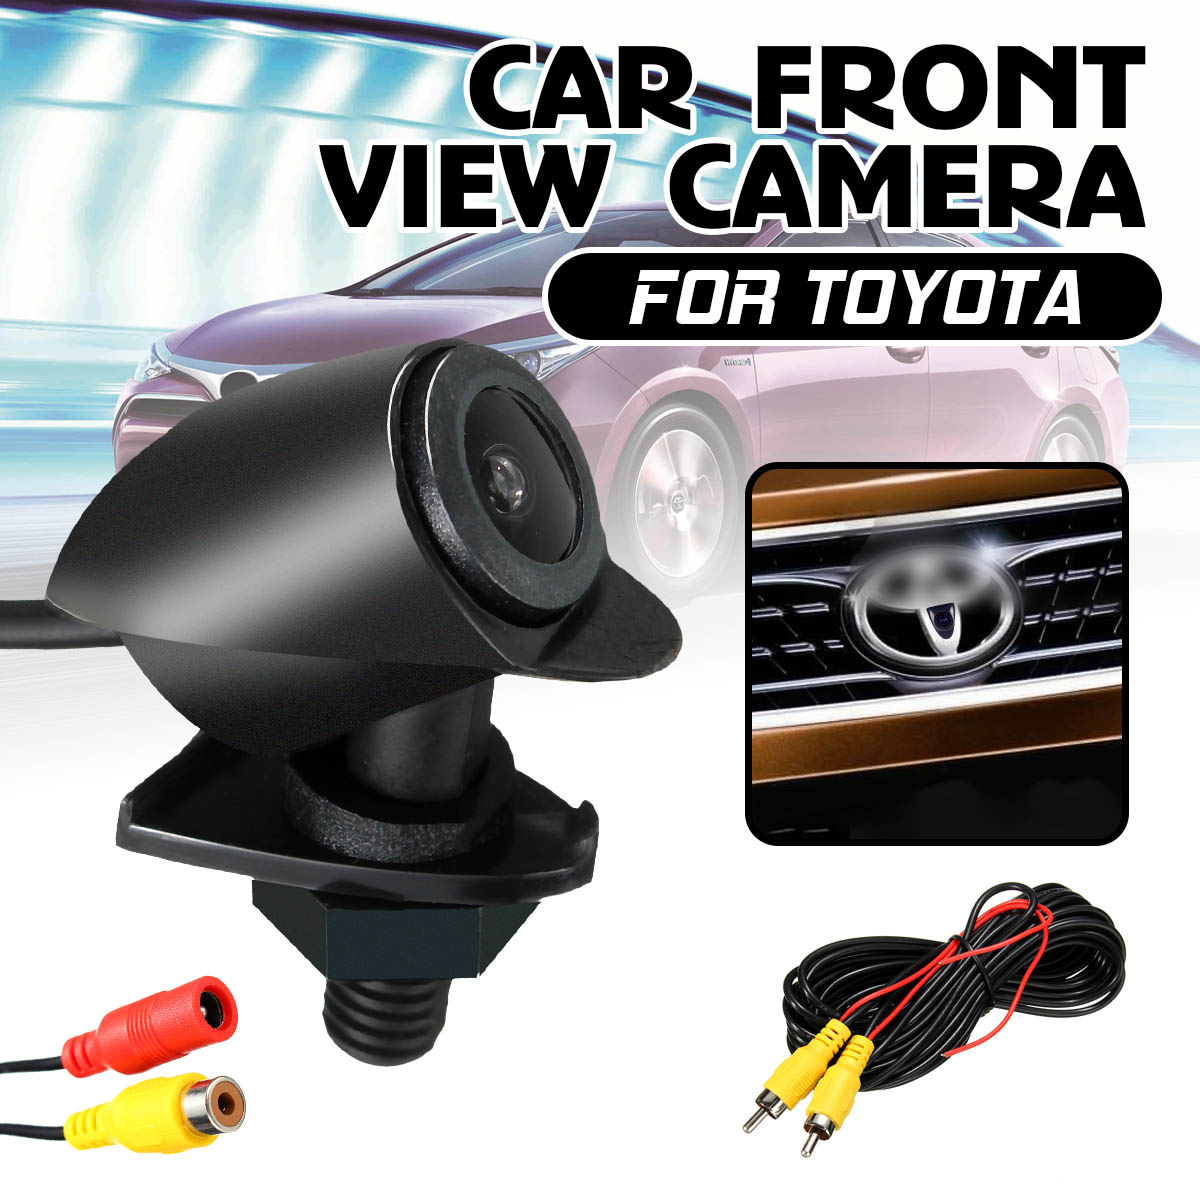 Car Logo Embedded 170° Full HD CCD Front View Camera for Toyota Camry Aurion